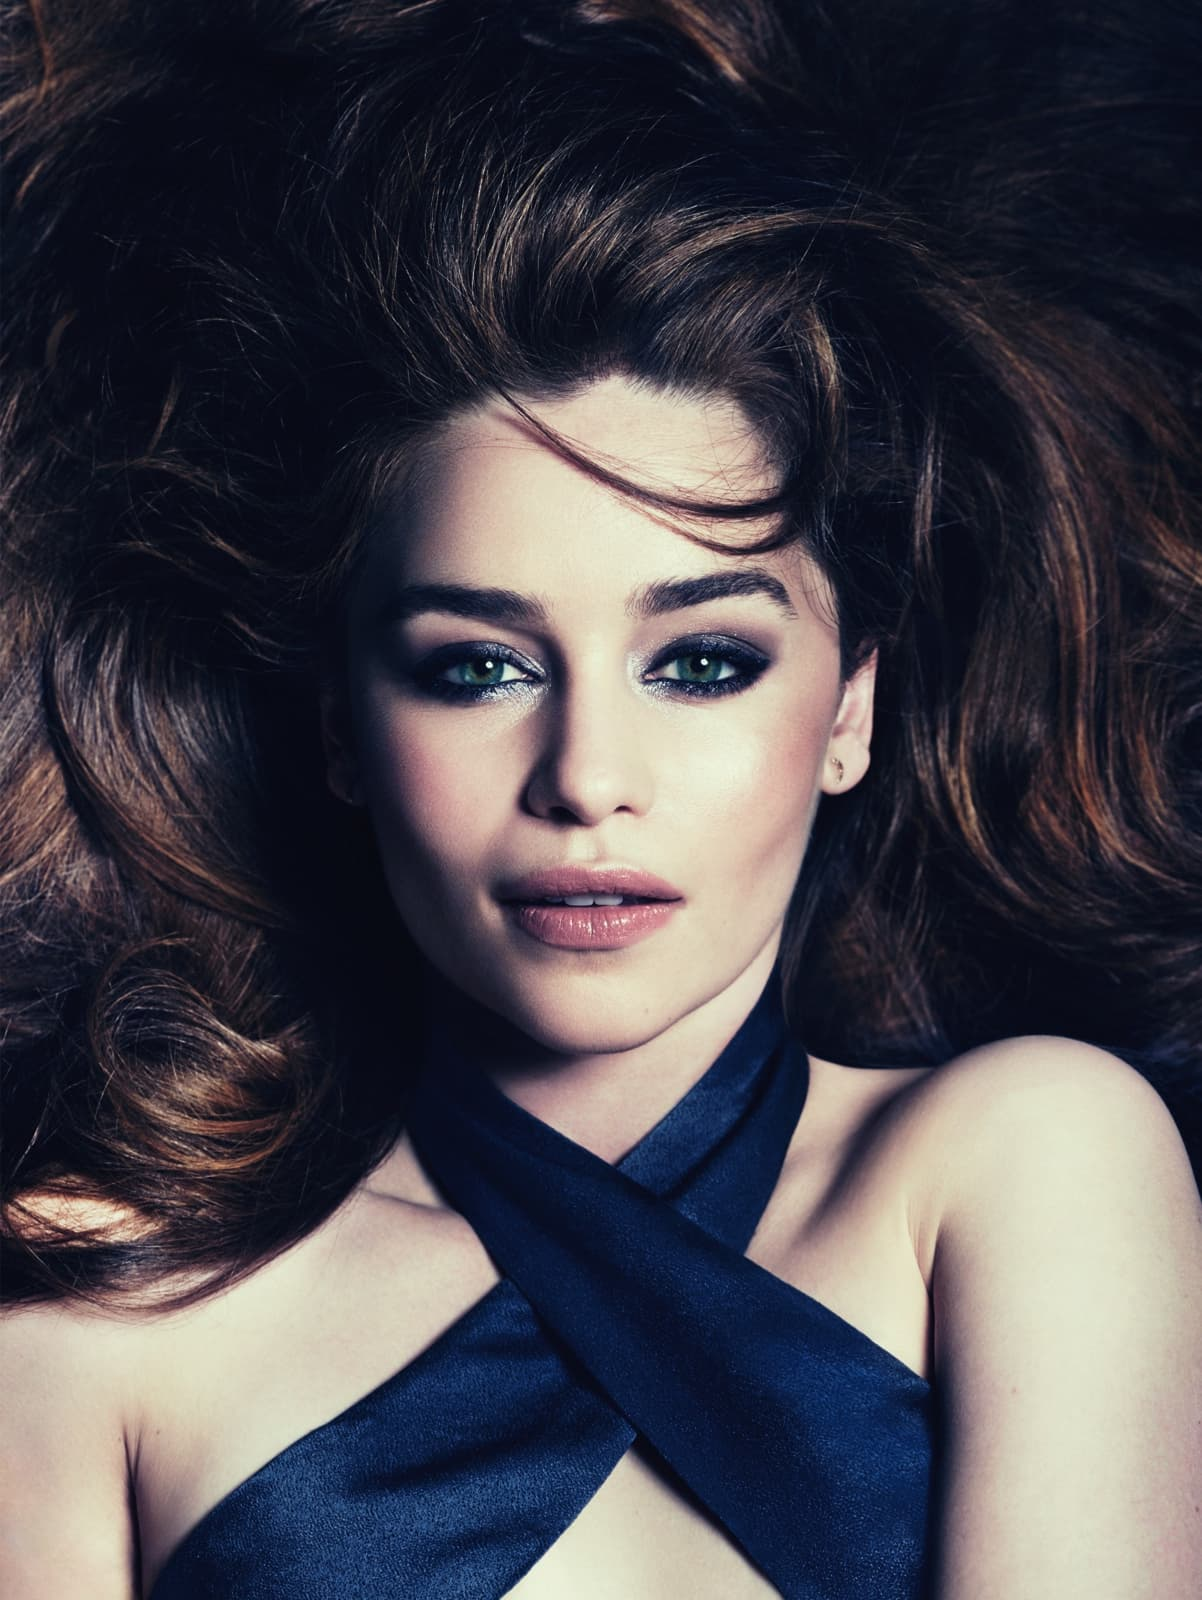 All Car Hd Wallpaper Download 15 Emilia Clarke Wallpapers Hd High Quality Resolution